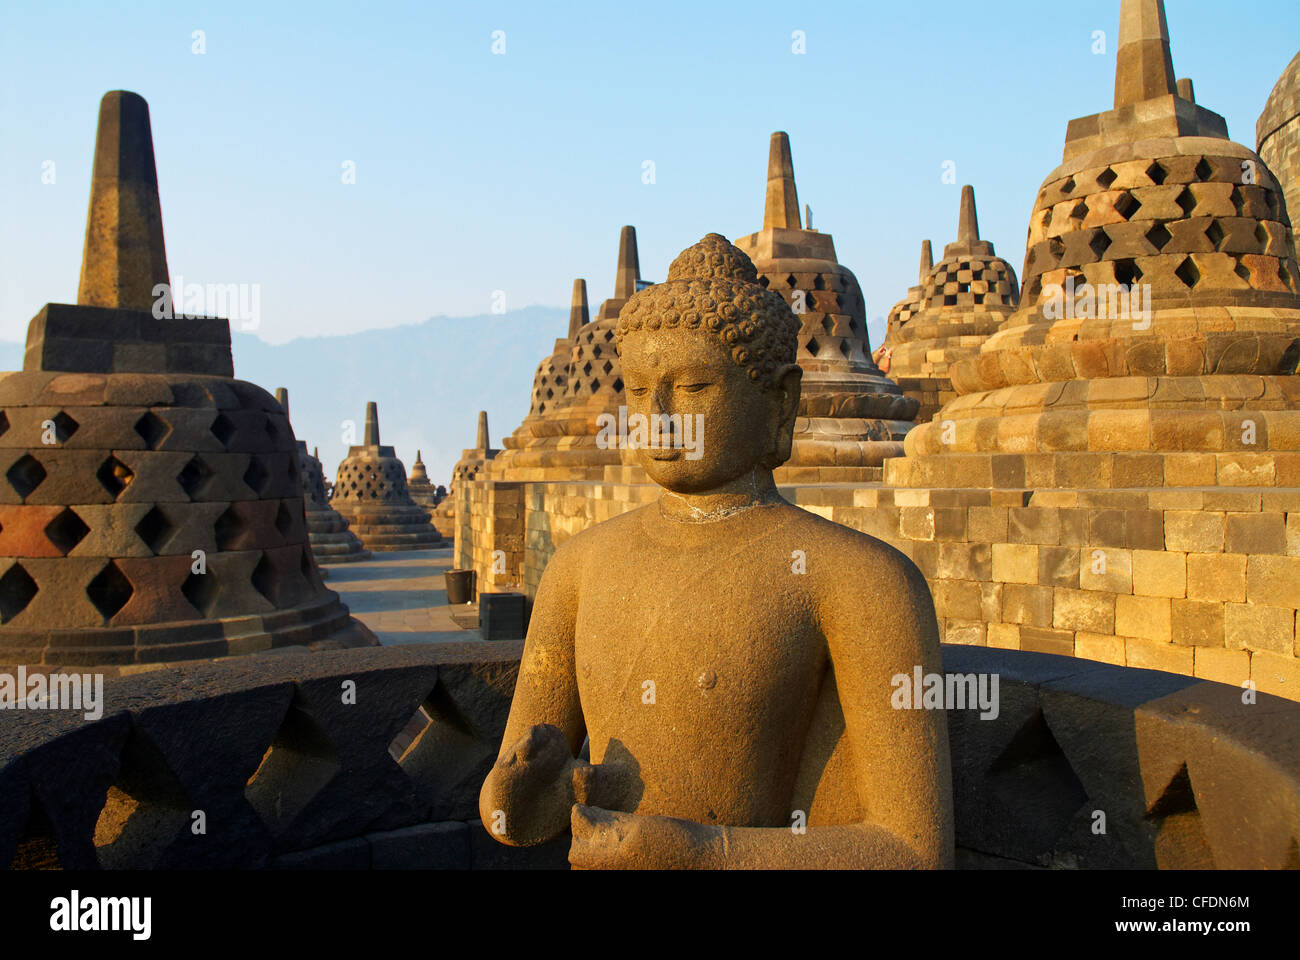 Borobudur, Buddhist archaeological site dating from the 9th century, UNESCO World Heritage Site, Java, Indonesia, - Stock Image